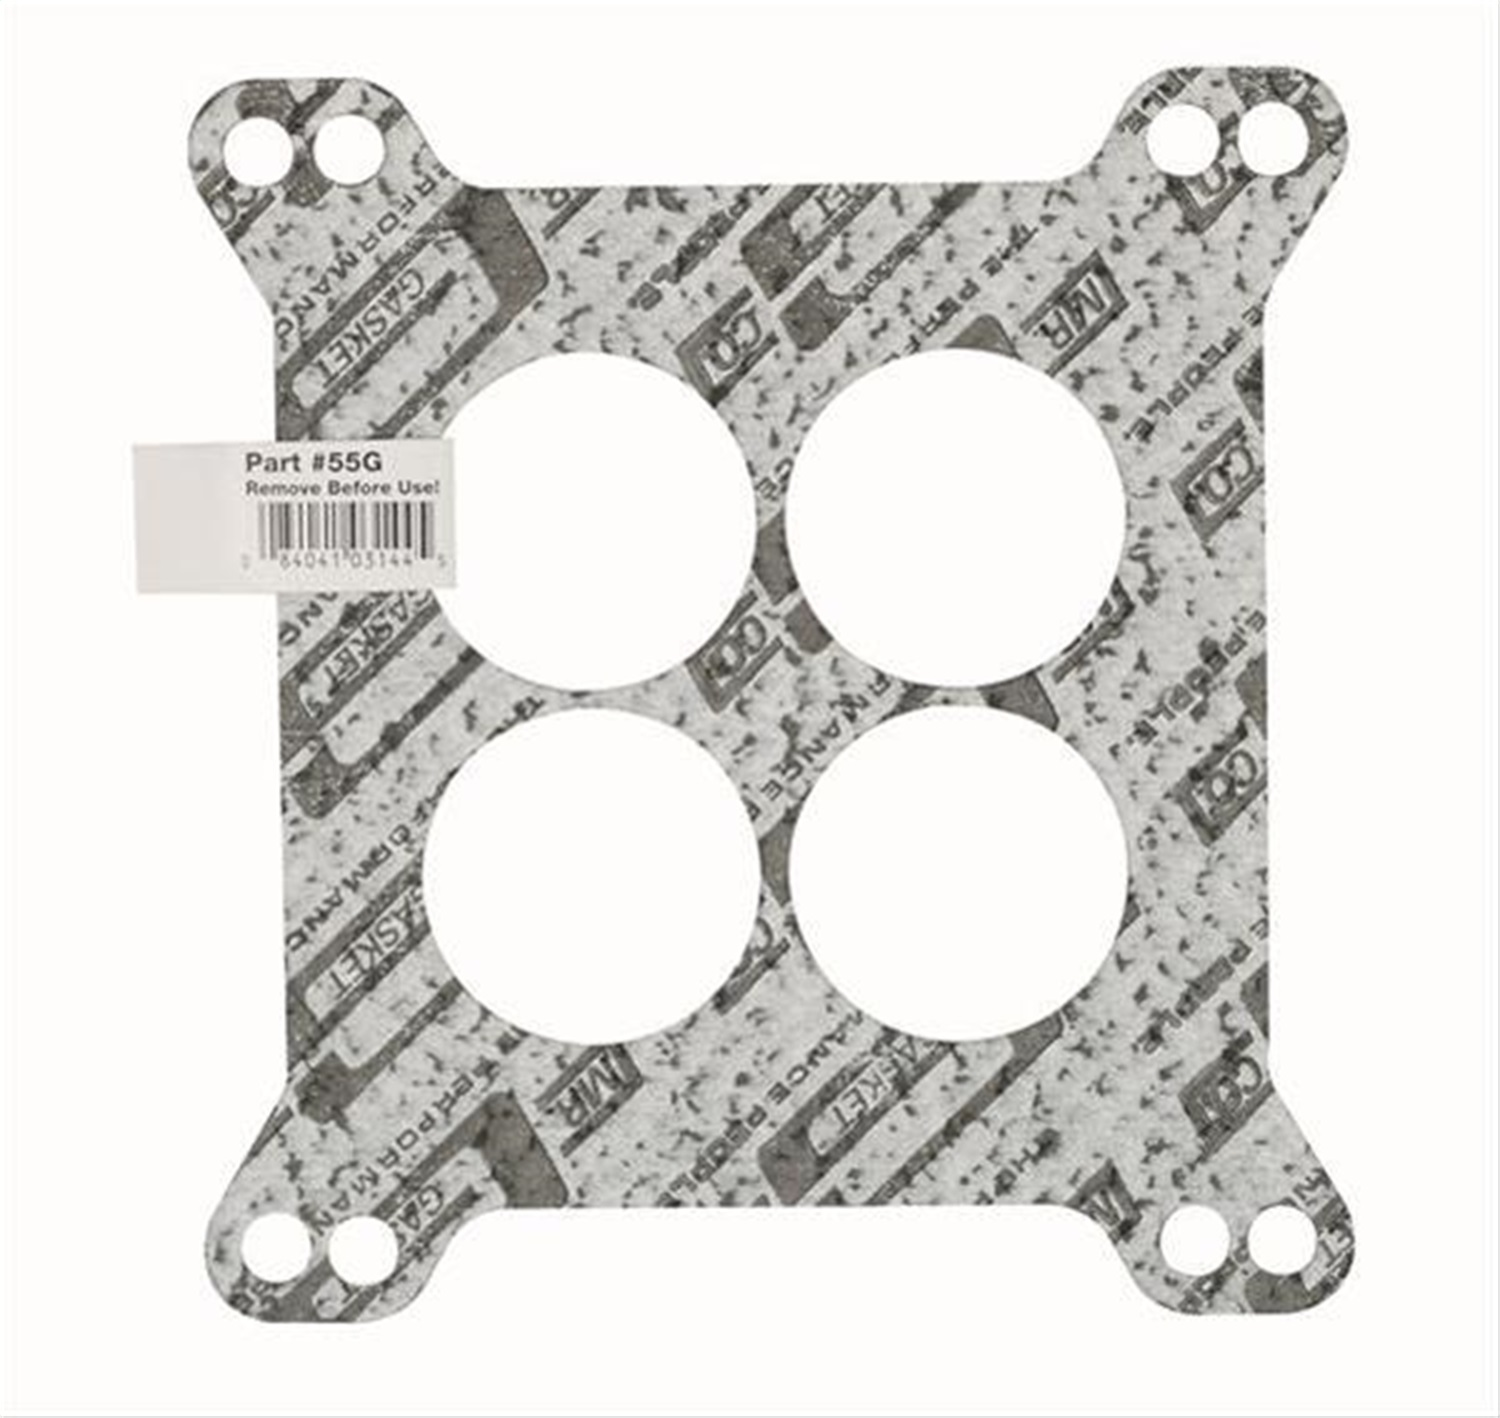 Mr. Gasket Carburetor Mounting Gasket (55G)